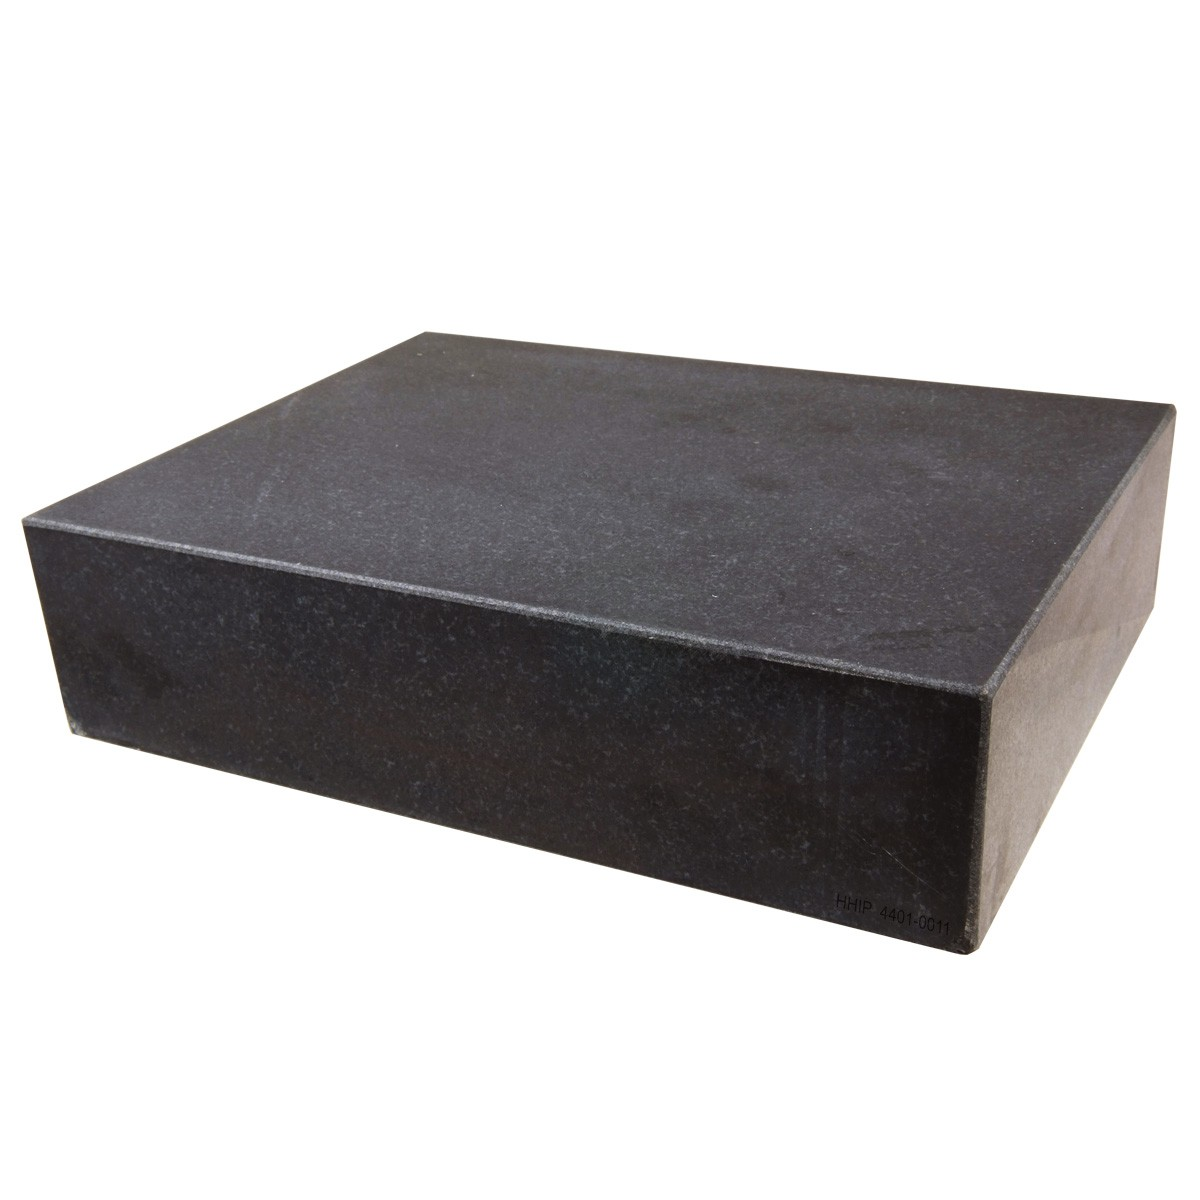 Black Granite Surface Plate Grade A Ledge 0 9/'/' x 12/'/' x 2/'/' Sharpening Stone